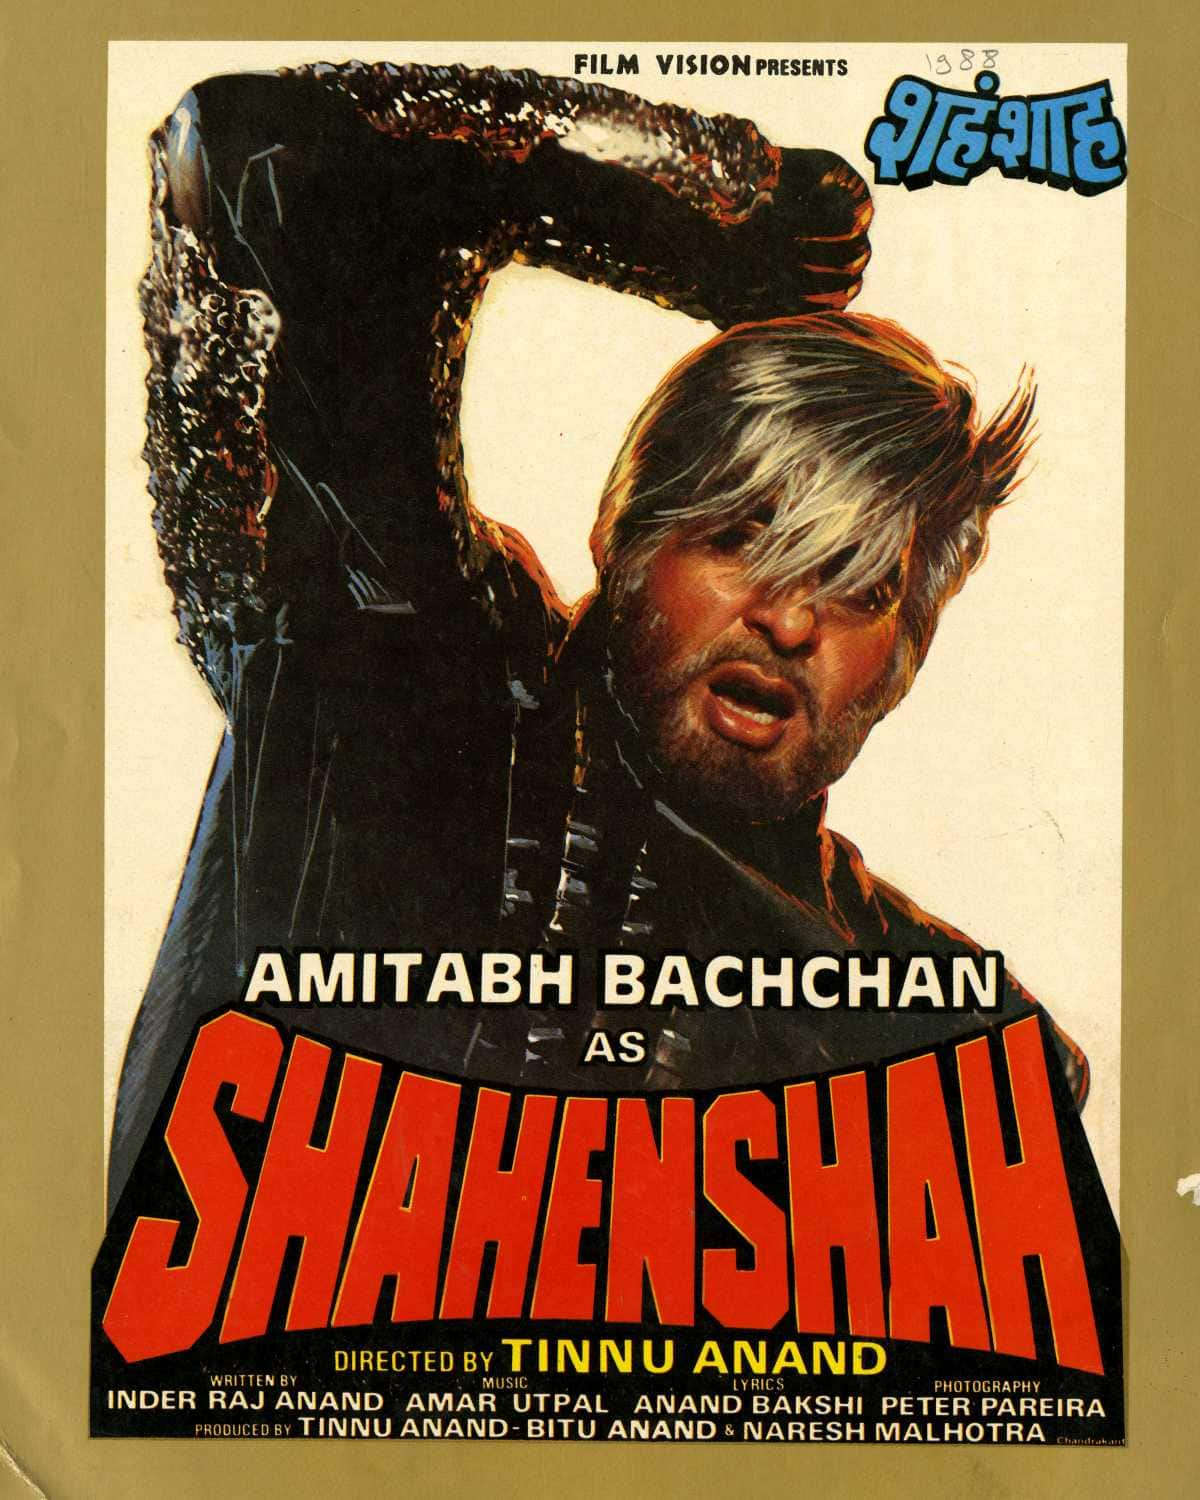 Ranveer Singh To Play Amitabh Bachchan's Role In Shahenshah Remake? Find Out